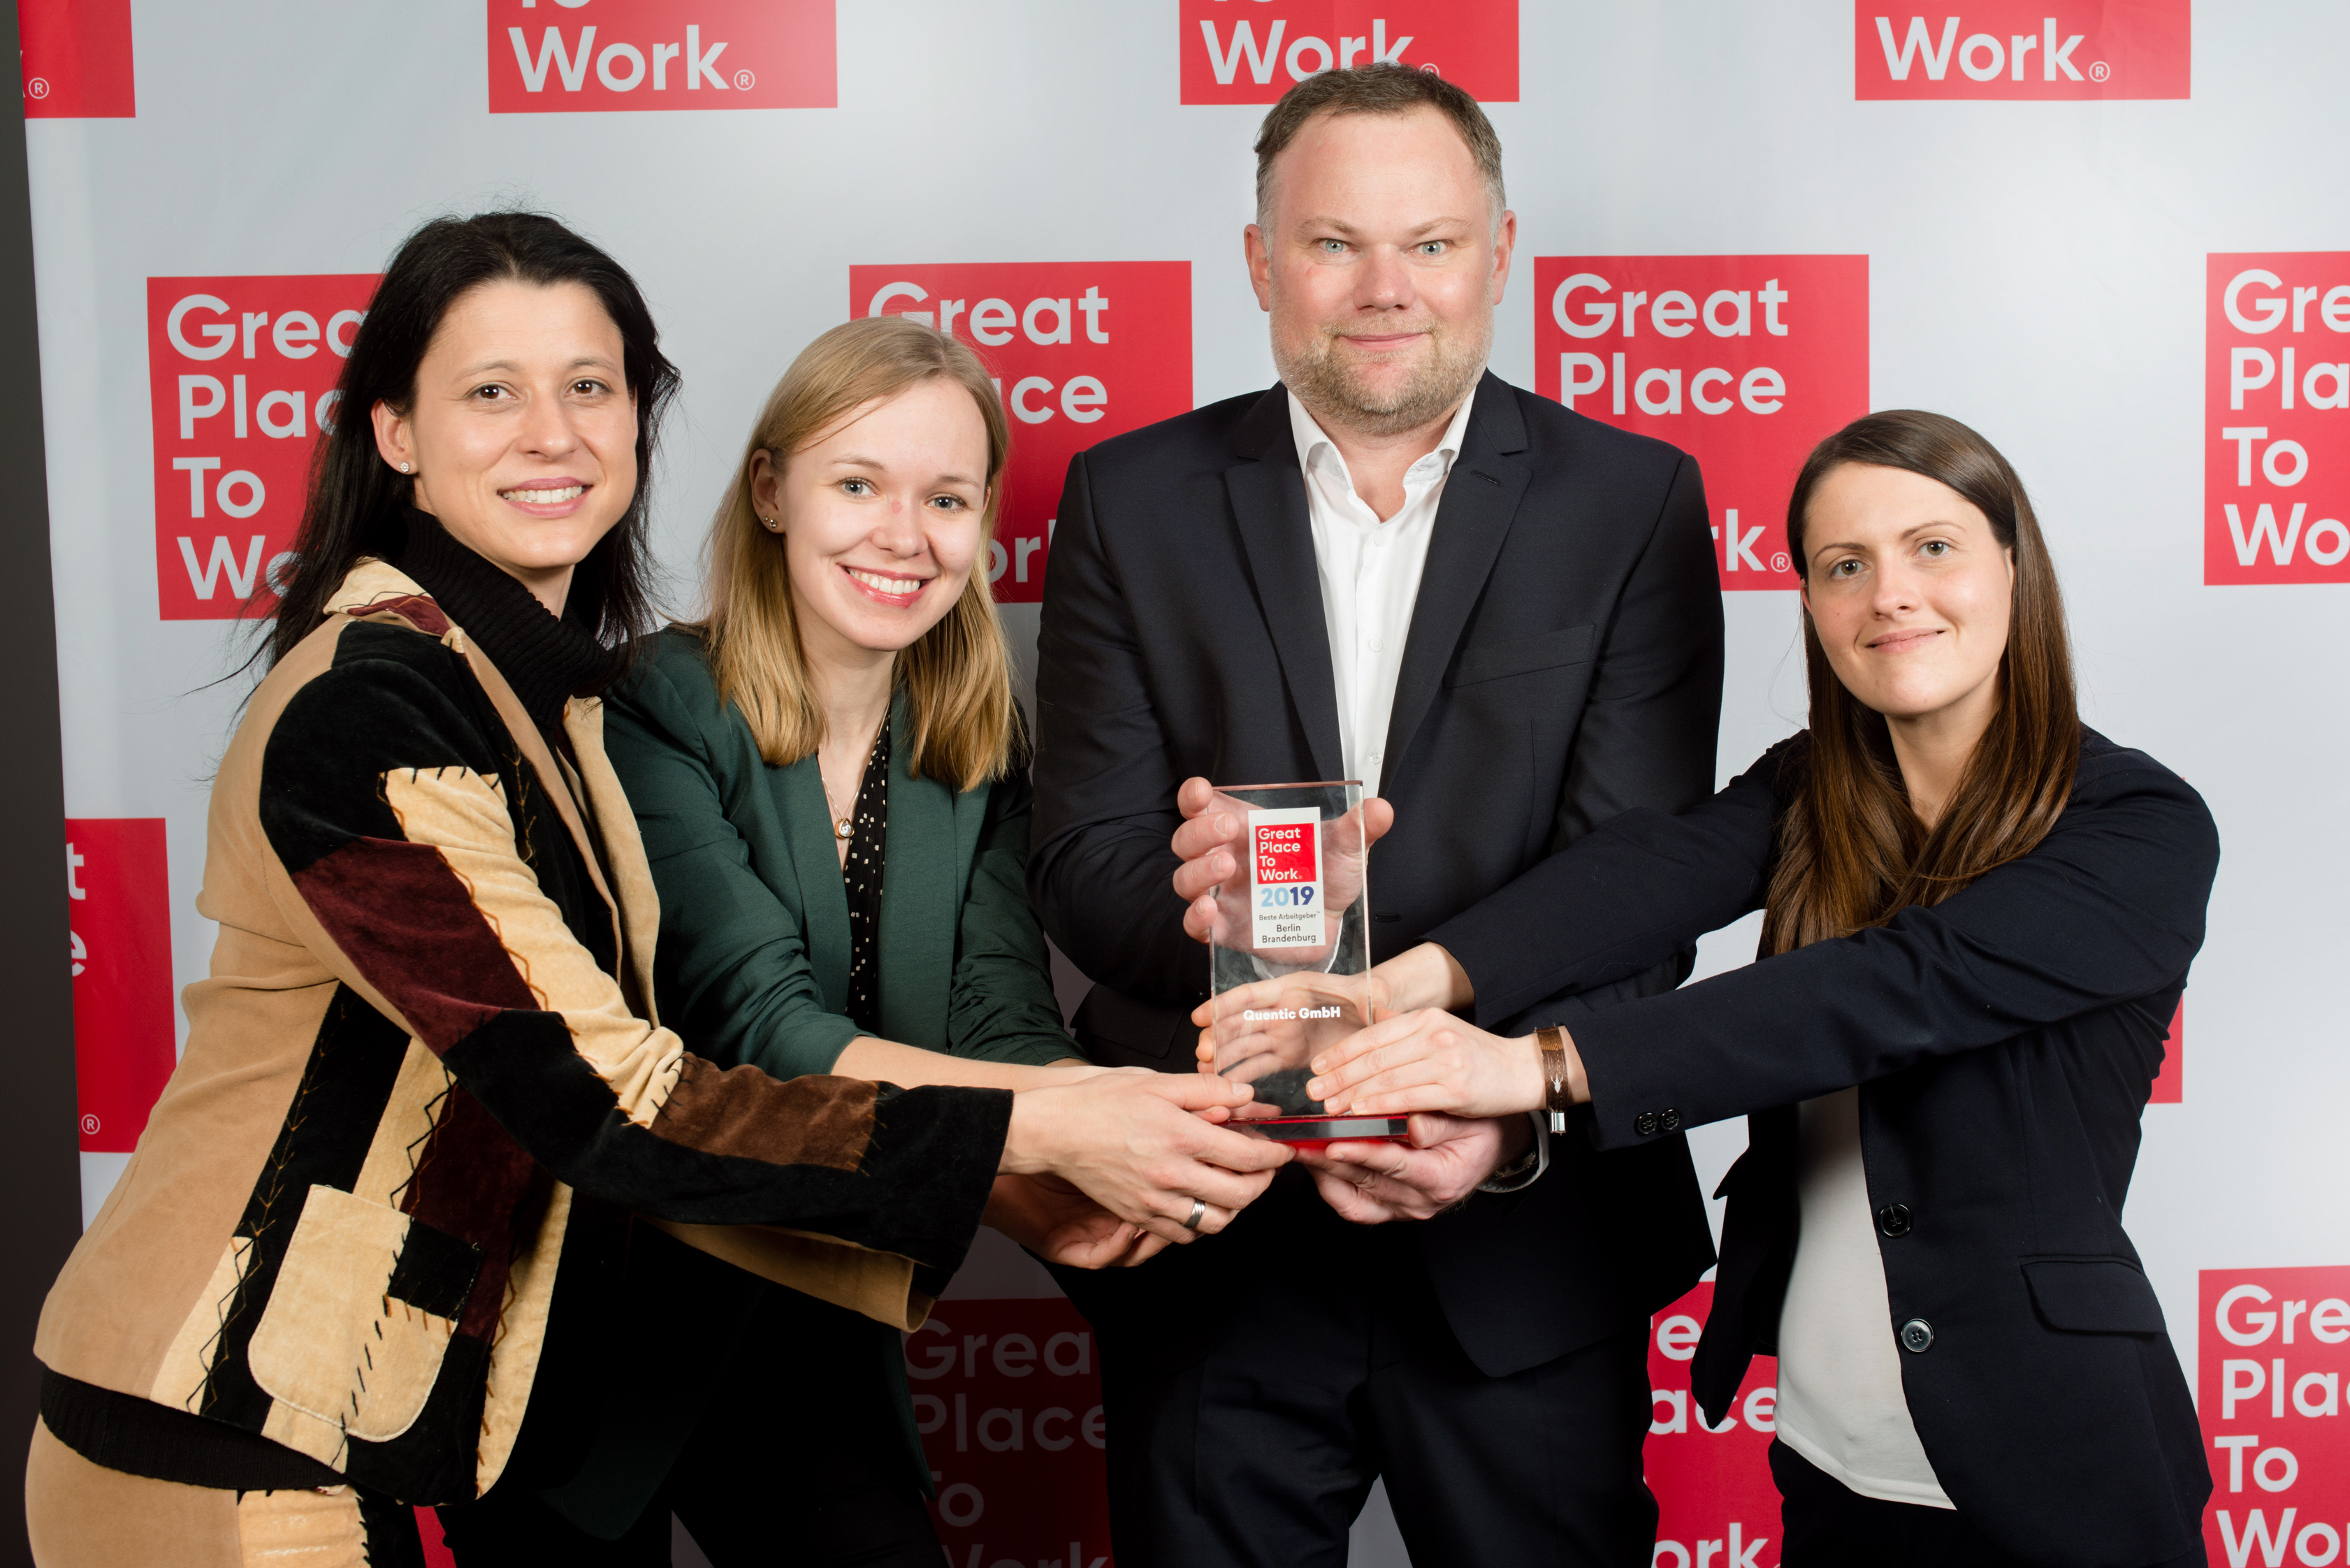 Quentic_is_ a_Great_Place_to_Work_Award_Berlin-Brandenburg_2019_kl.jpg